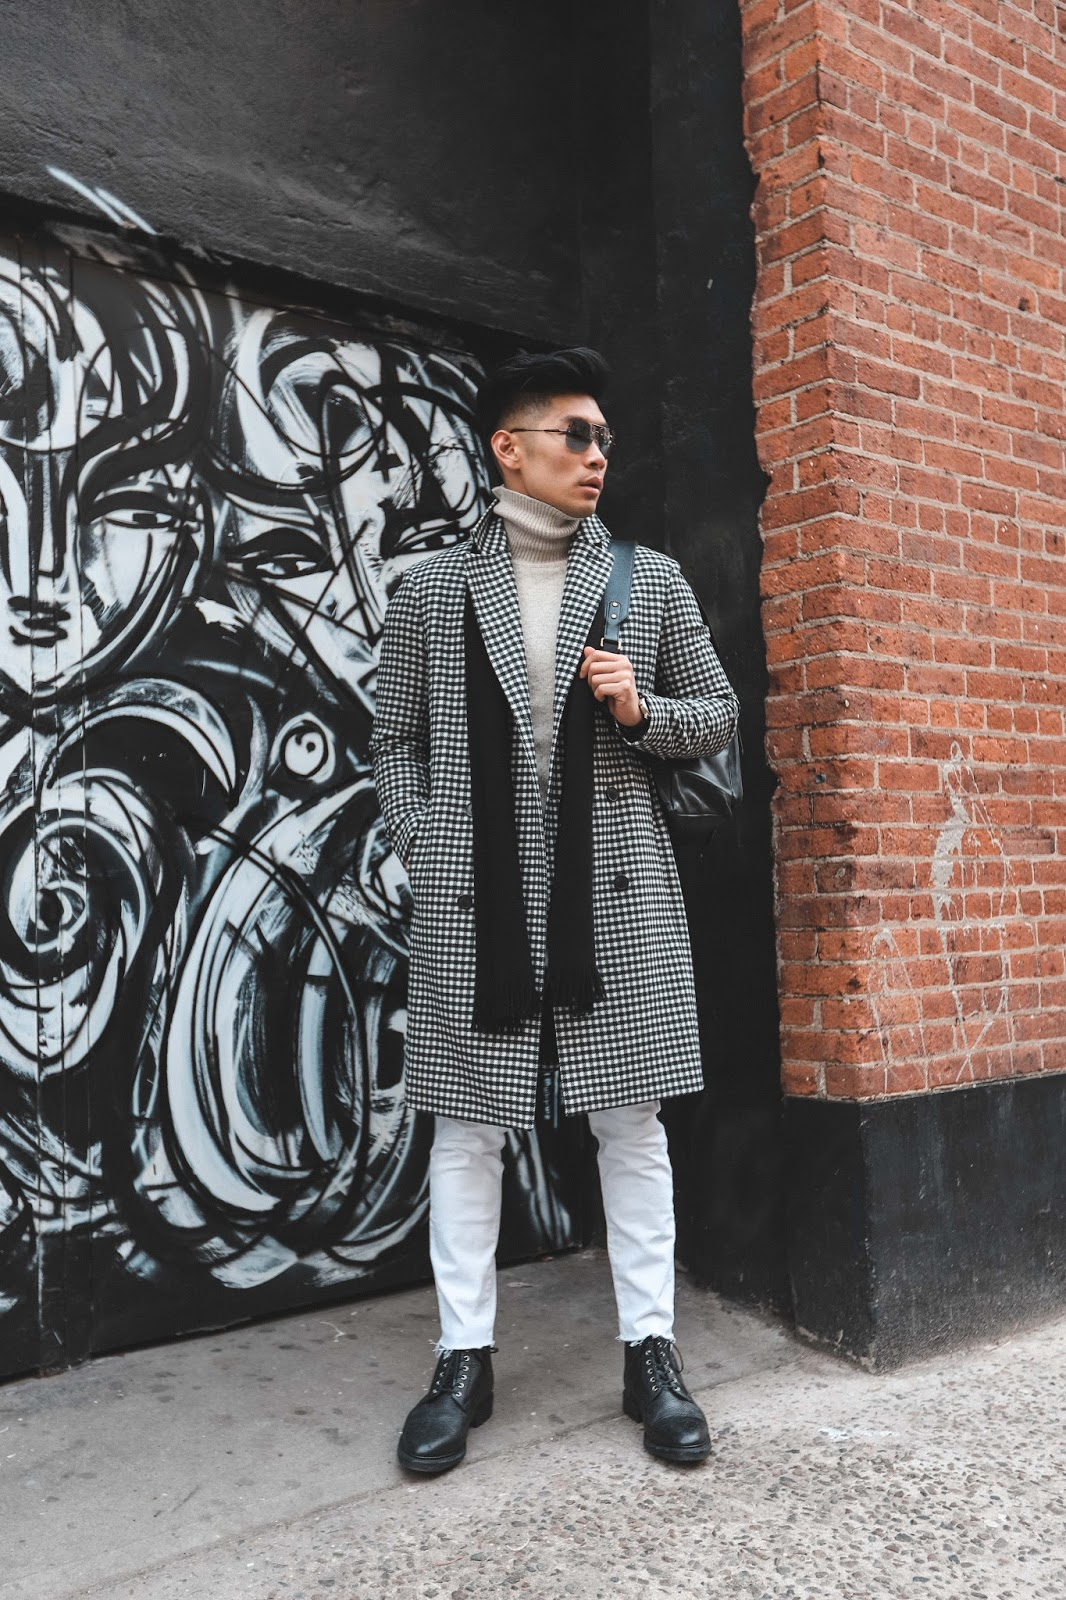 Levitate Style - How to Wear a Bold-Patterned Top Coat